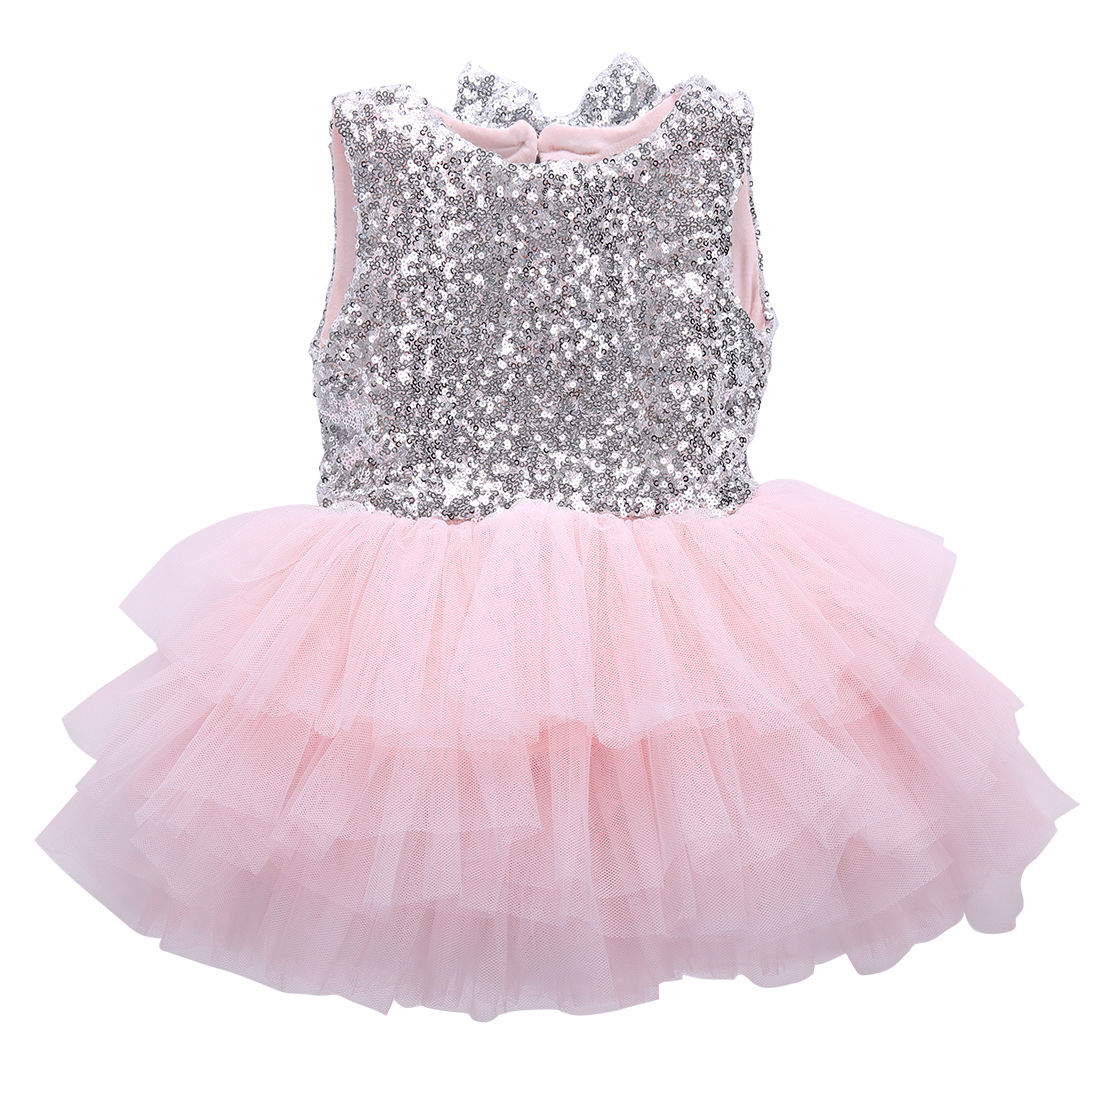 Infant Toddler Baby Girl Sequins Flower Dress Bow Lace Tulle Party Gown Formal Dresses Backless Sundress lilac tulle open back flower girl dresses with white lace and bow silver sequins kid tutu dress baby birthday party prom gown